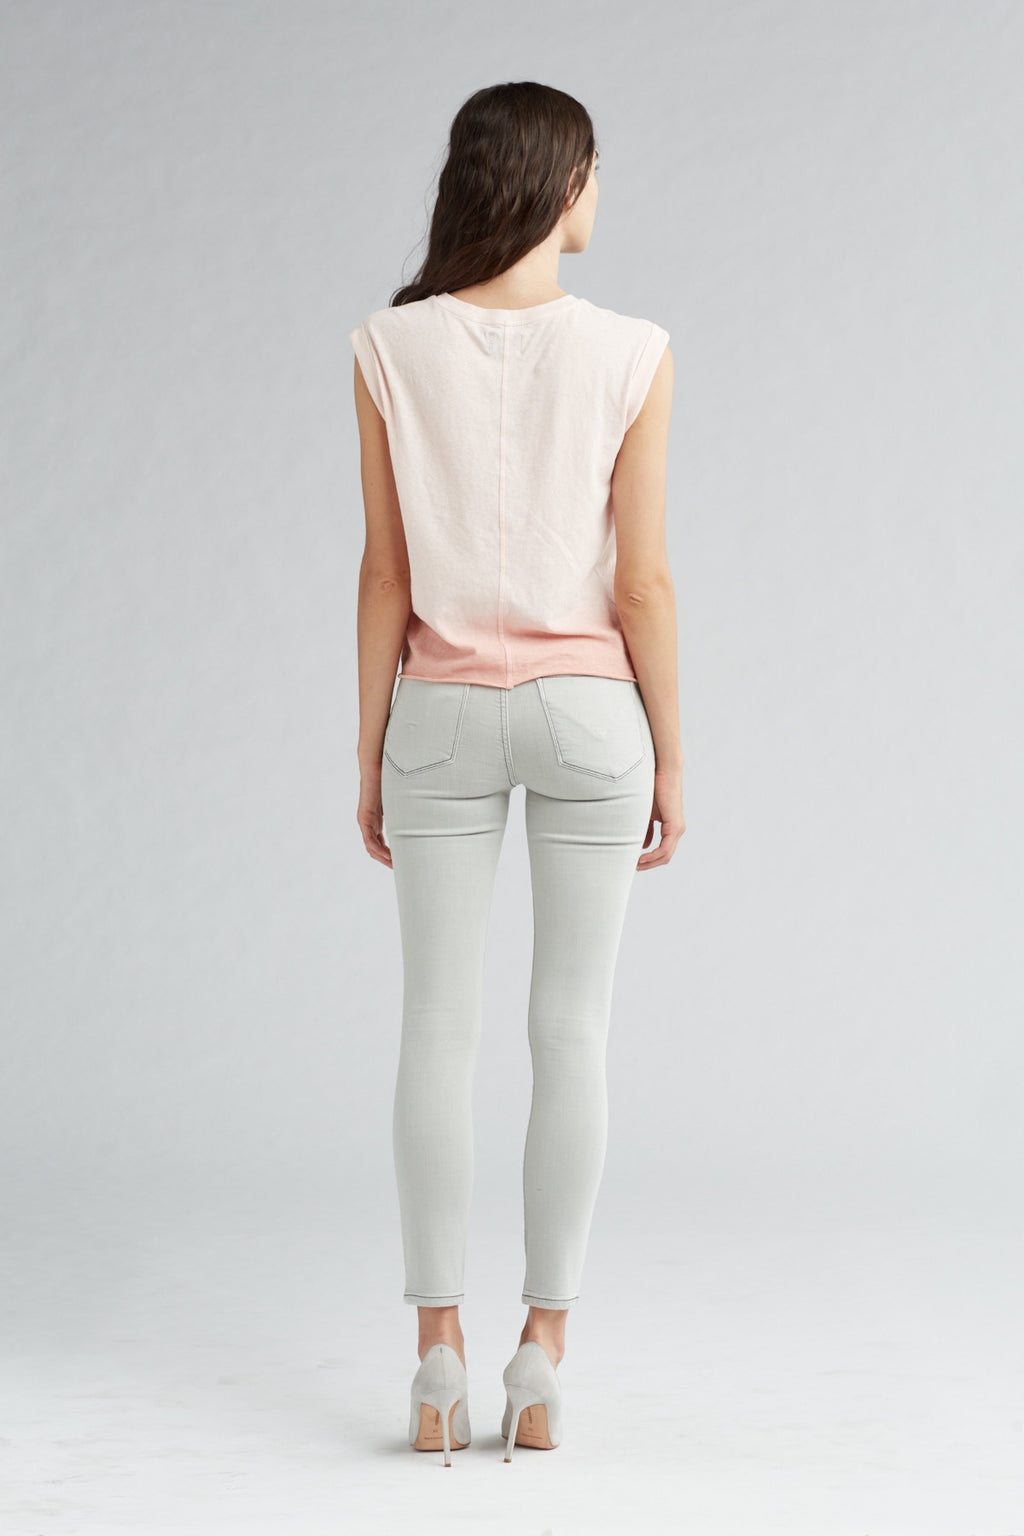 ROLLED SLEEVE TANK - PINK OMBRE - Image 4